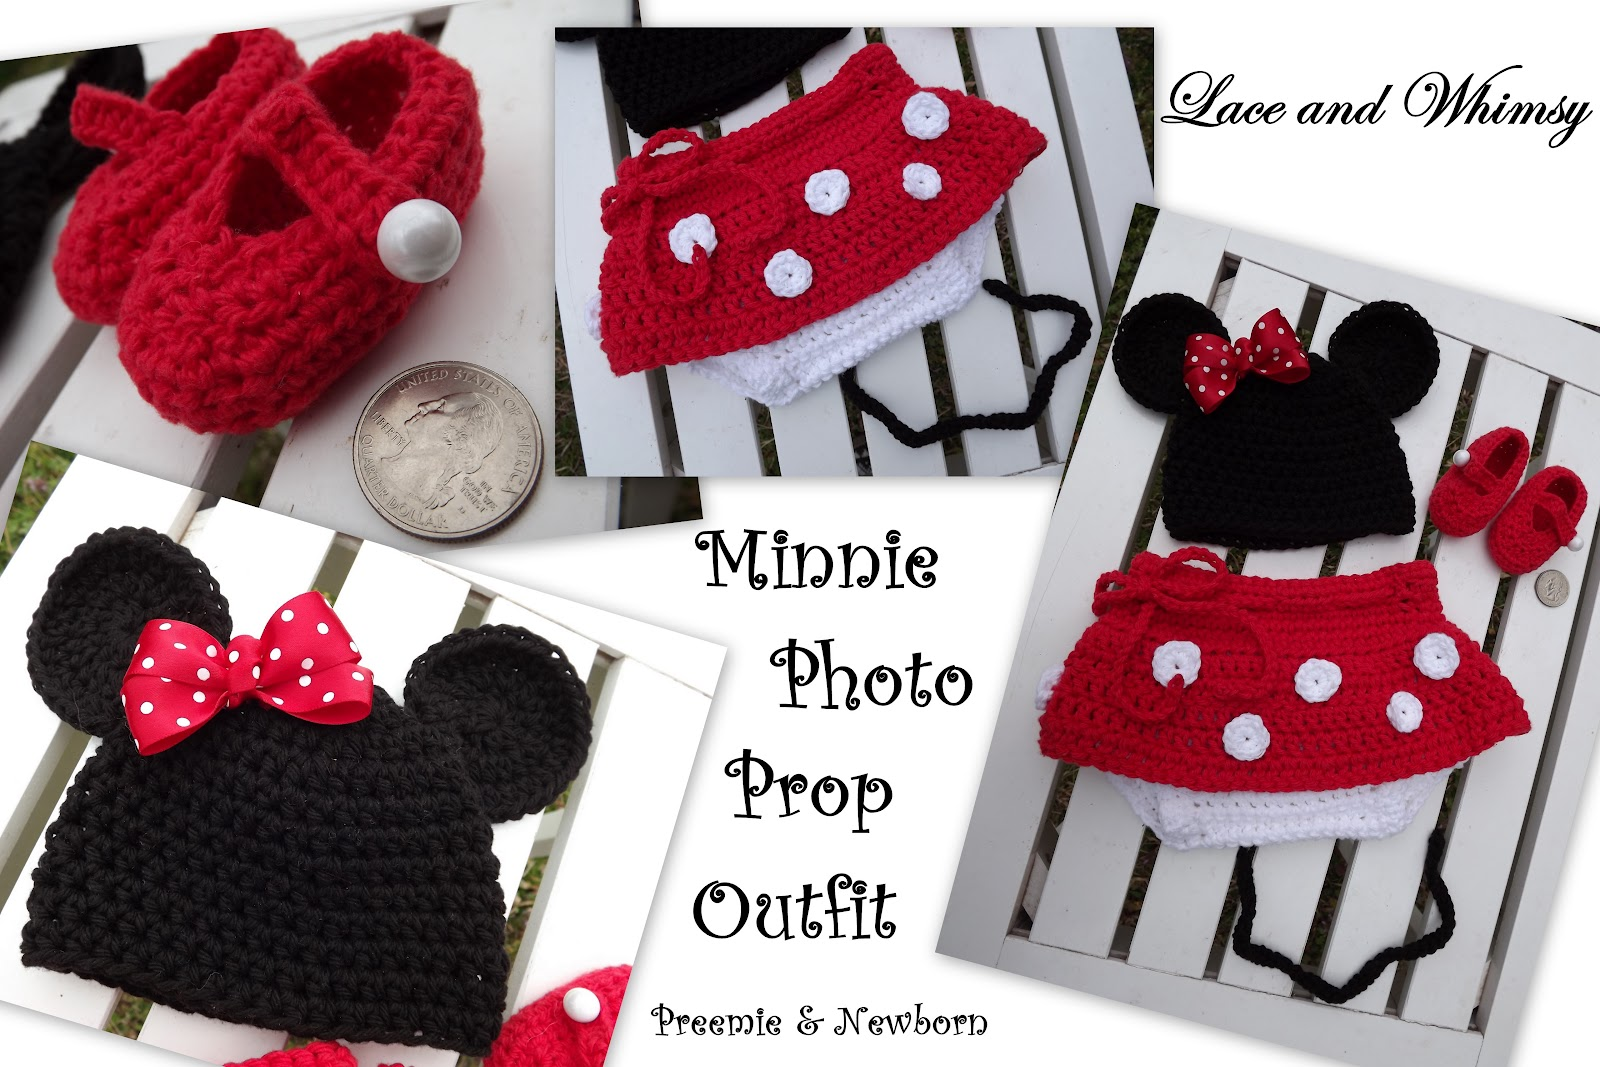 Lace and Whimsy: Minnie Mouse Preemie Photo Prop